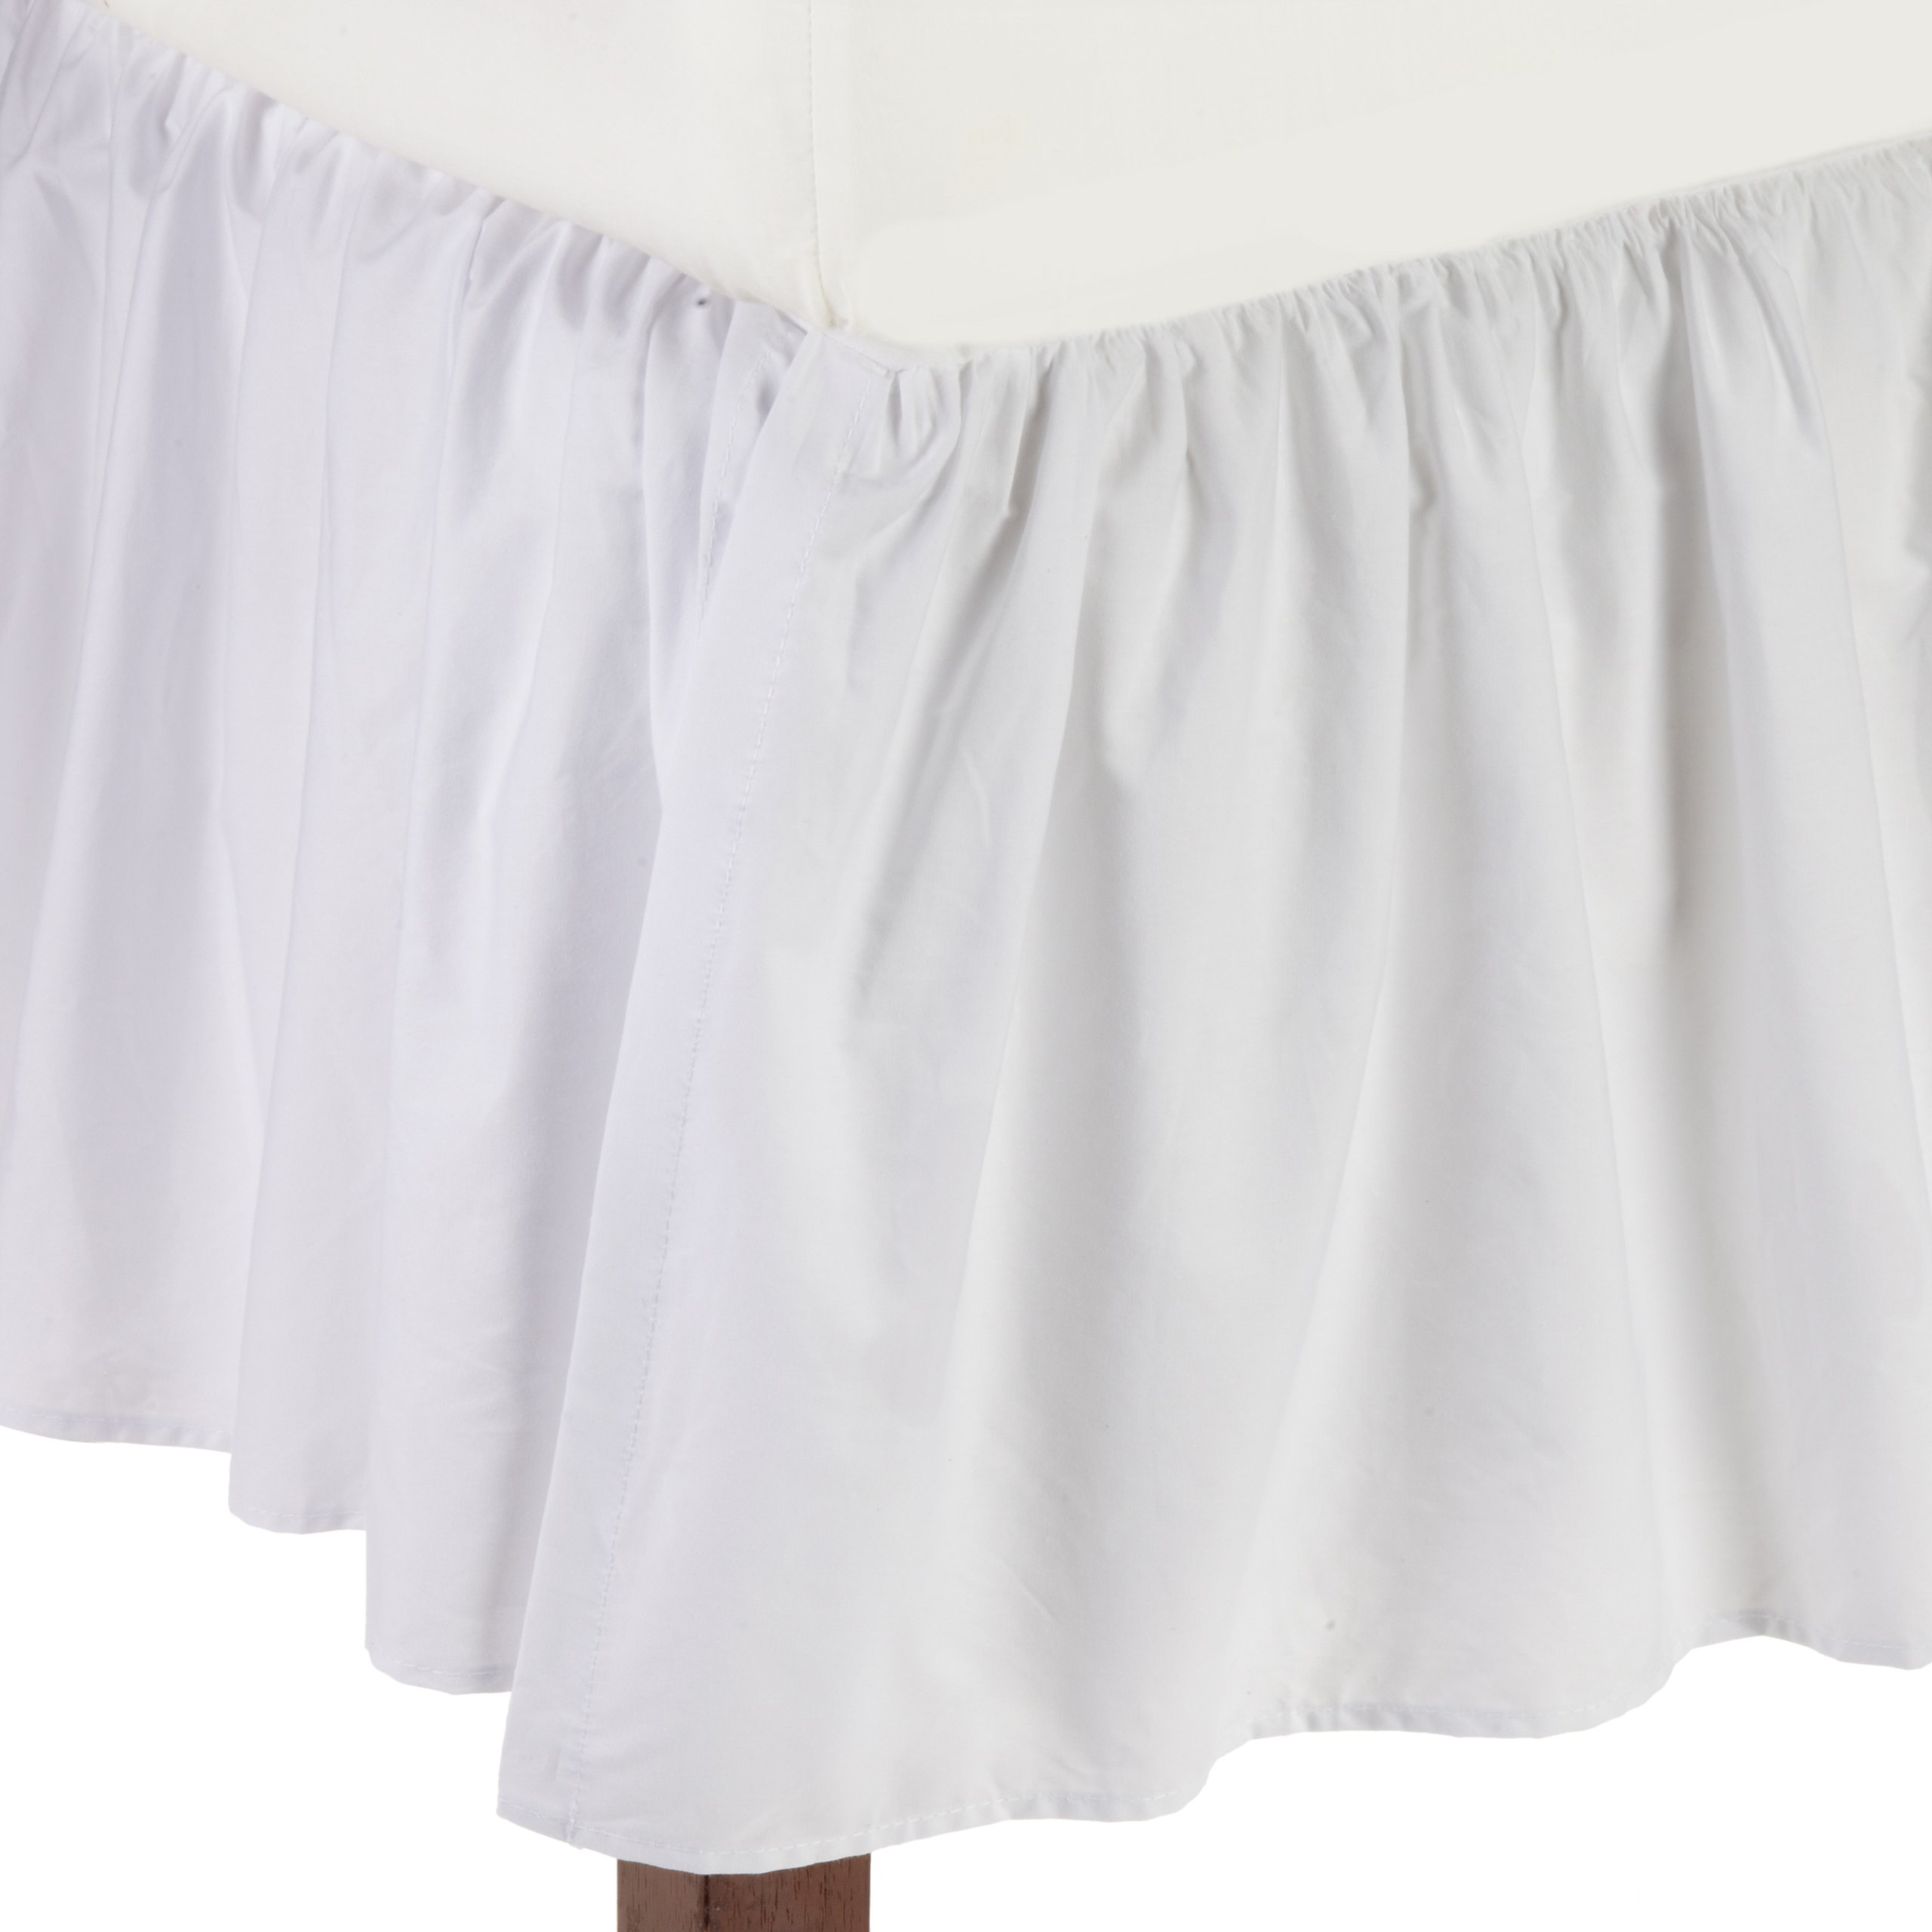 American Baby Company 100% Cotton Percale Ruffled Crib Skirt, White